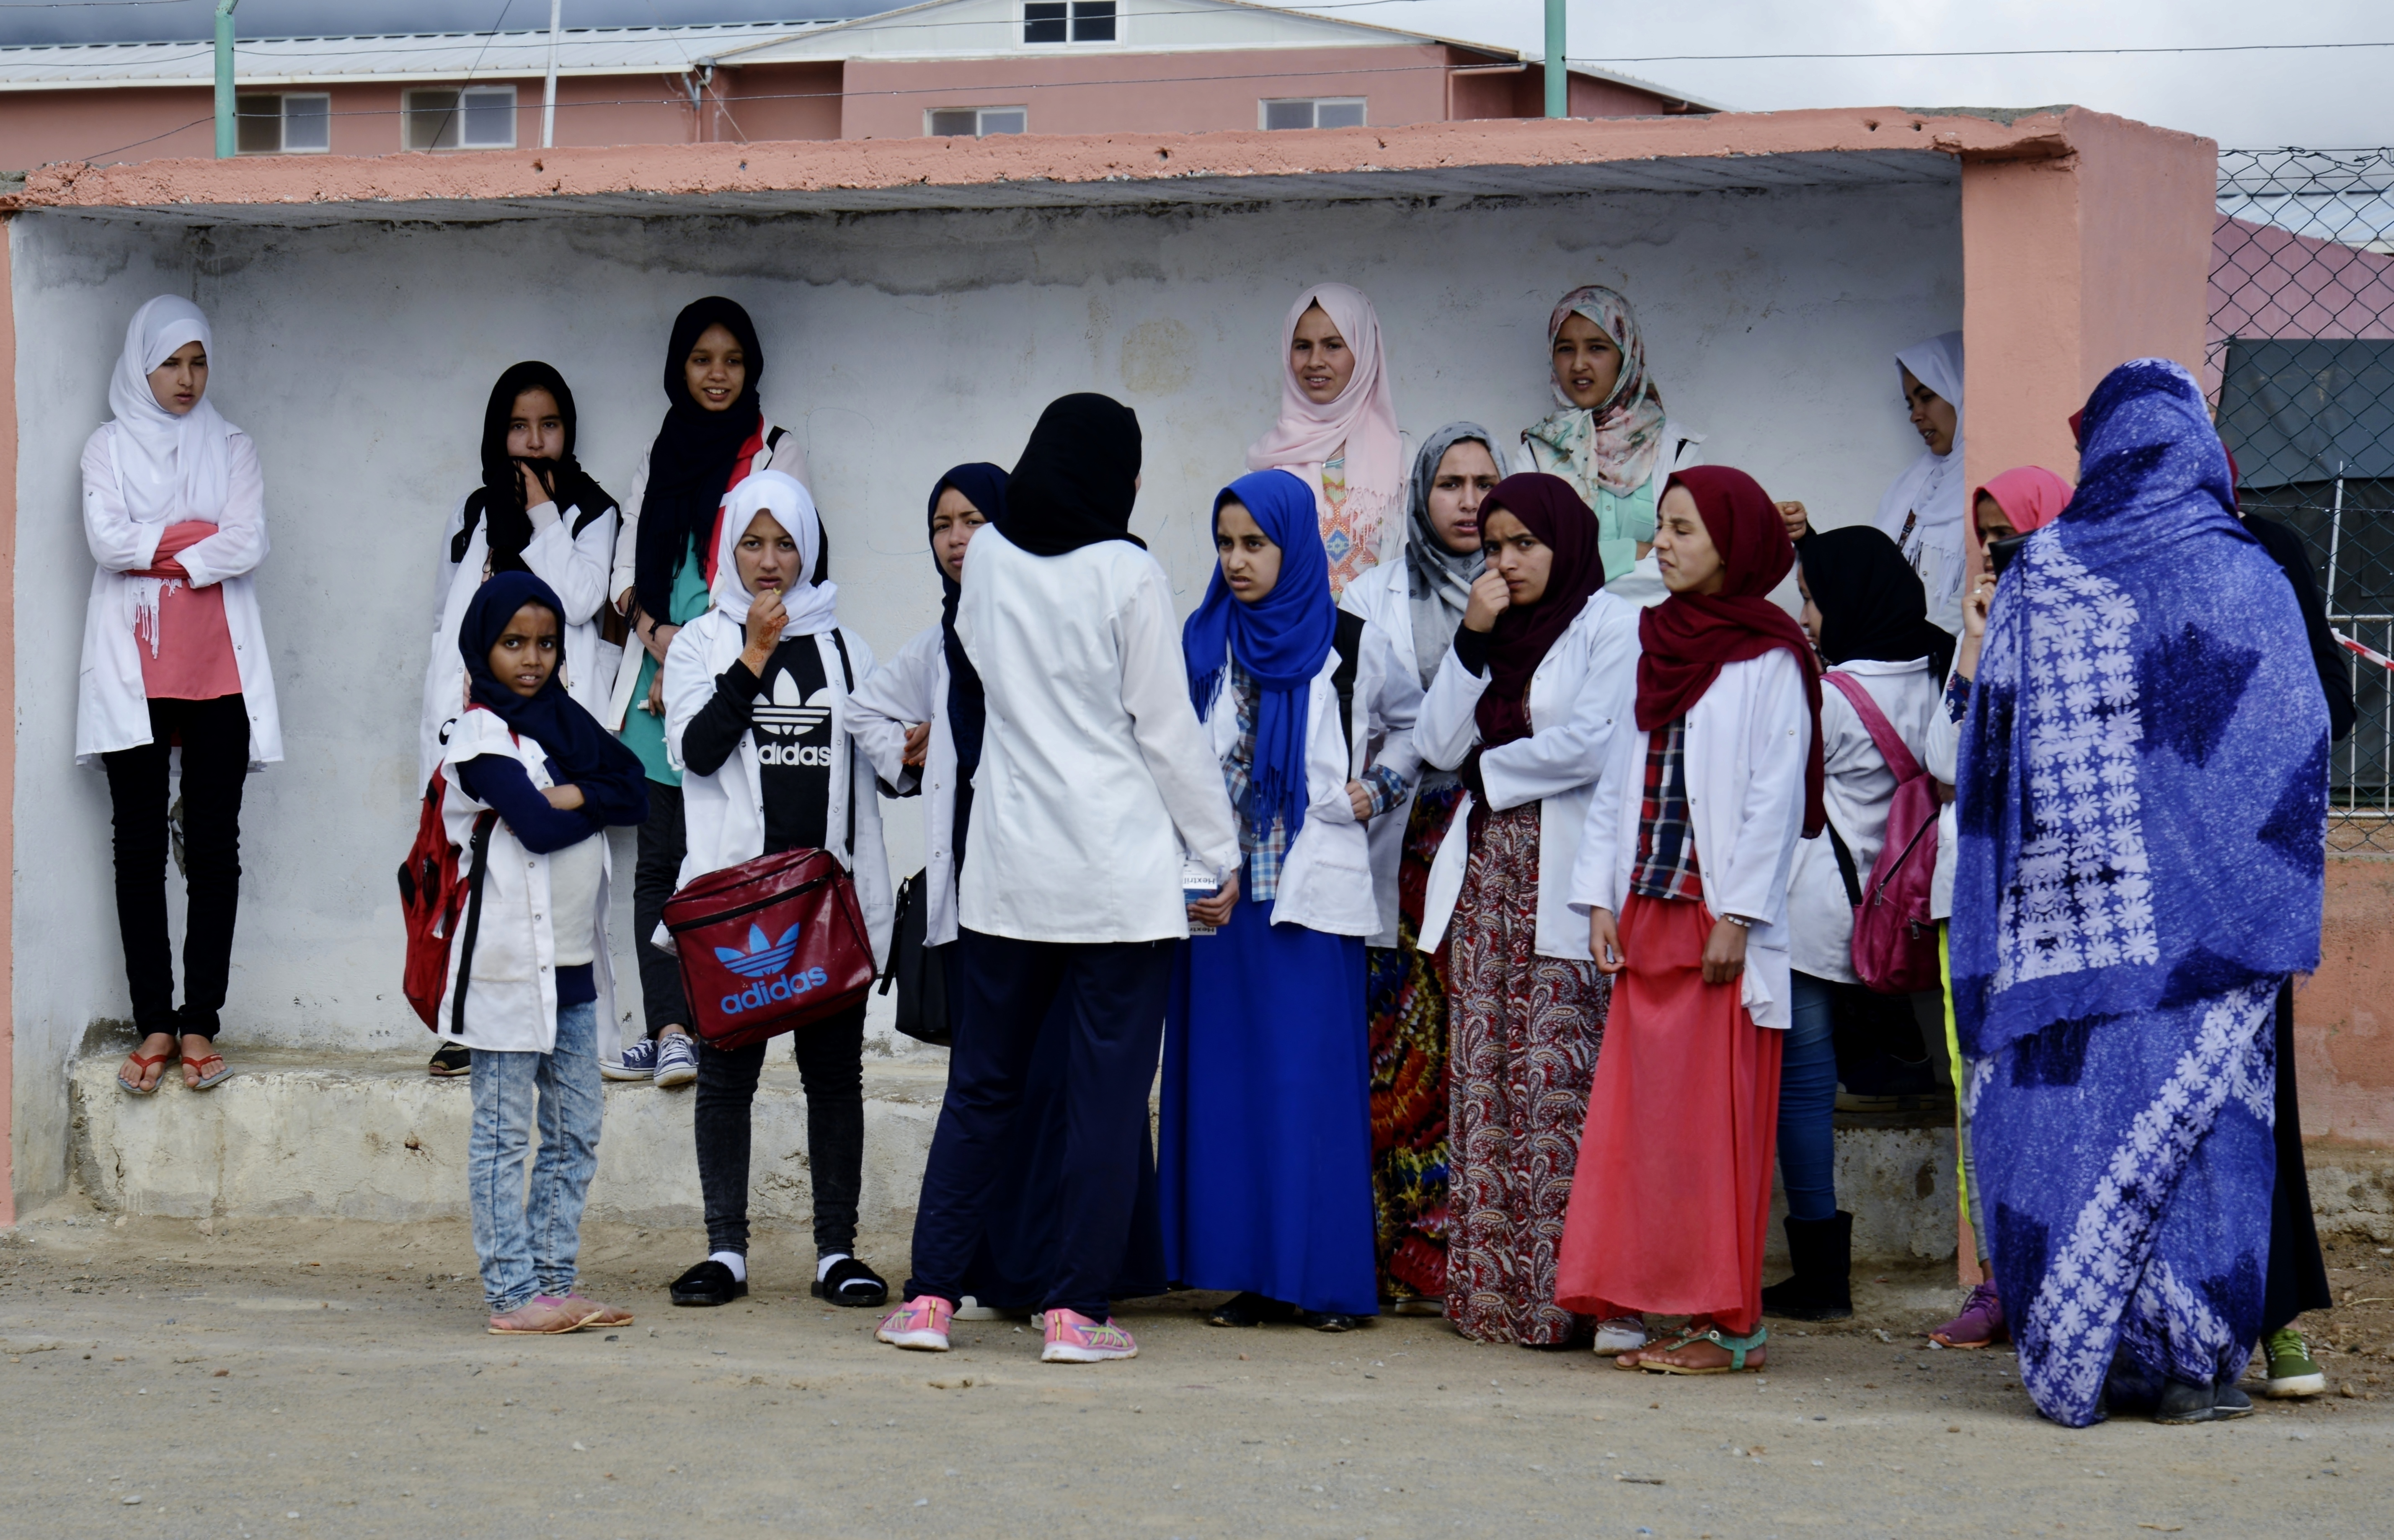 Moroccan women and young girls wait in the shade for dental services during the Humanitarian Civic Assistance component of Exercise African Lion 2018 in Bounaamane, Morocco, April 24, 2018.  Exercise African Lion 2018 is a Chairman of the Joint Chiefs of Staff-sponsored, U.S. African Command-scheduled, U.S. Marine Corps Forces Europe and Africa-led, joint and combined exercise conducted in the Kingdom of Morocco. African Lion offers an opportunity to improve interoperability and cooperation while demonstrating the strong military bond that exists between the participating nations. (U.S. Army National Guard photo by Maj. Samantha Madsen)